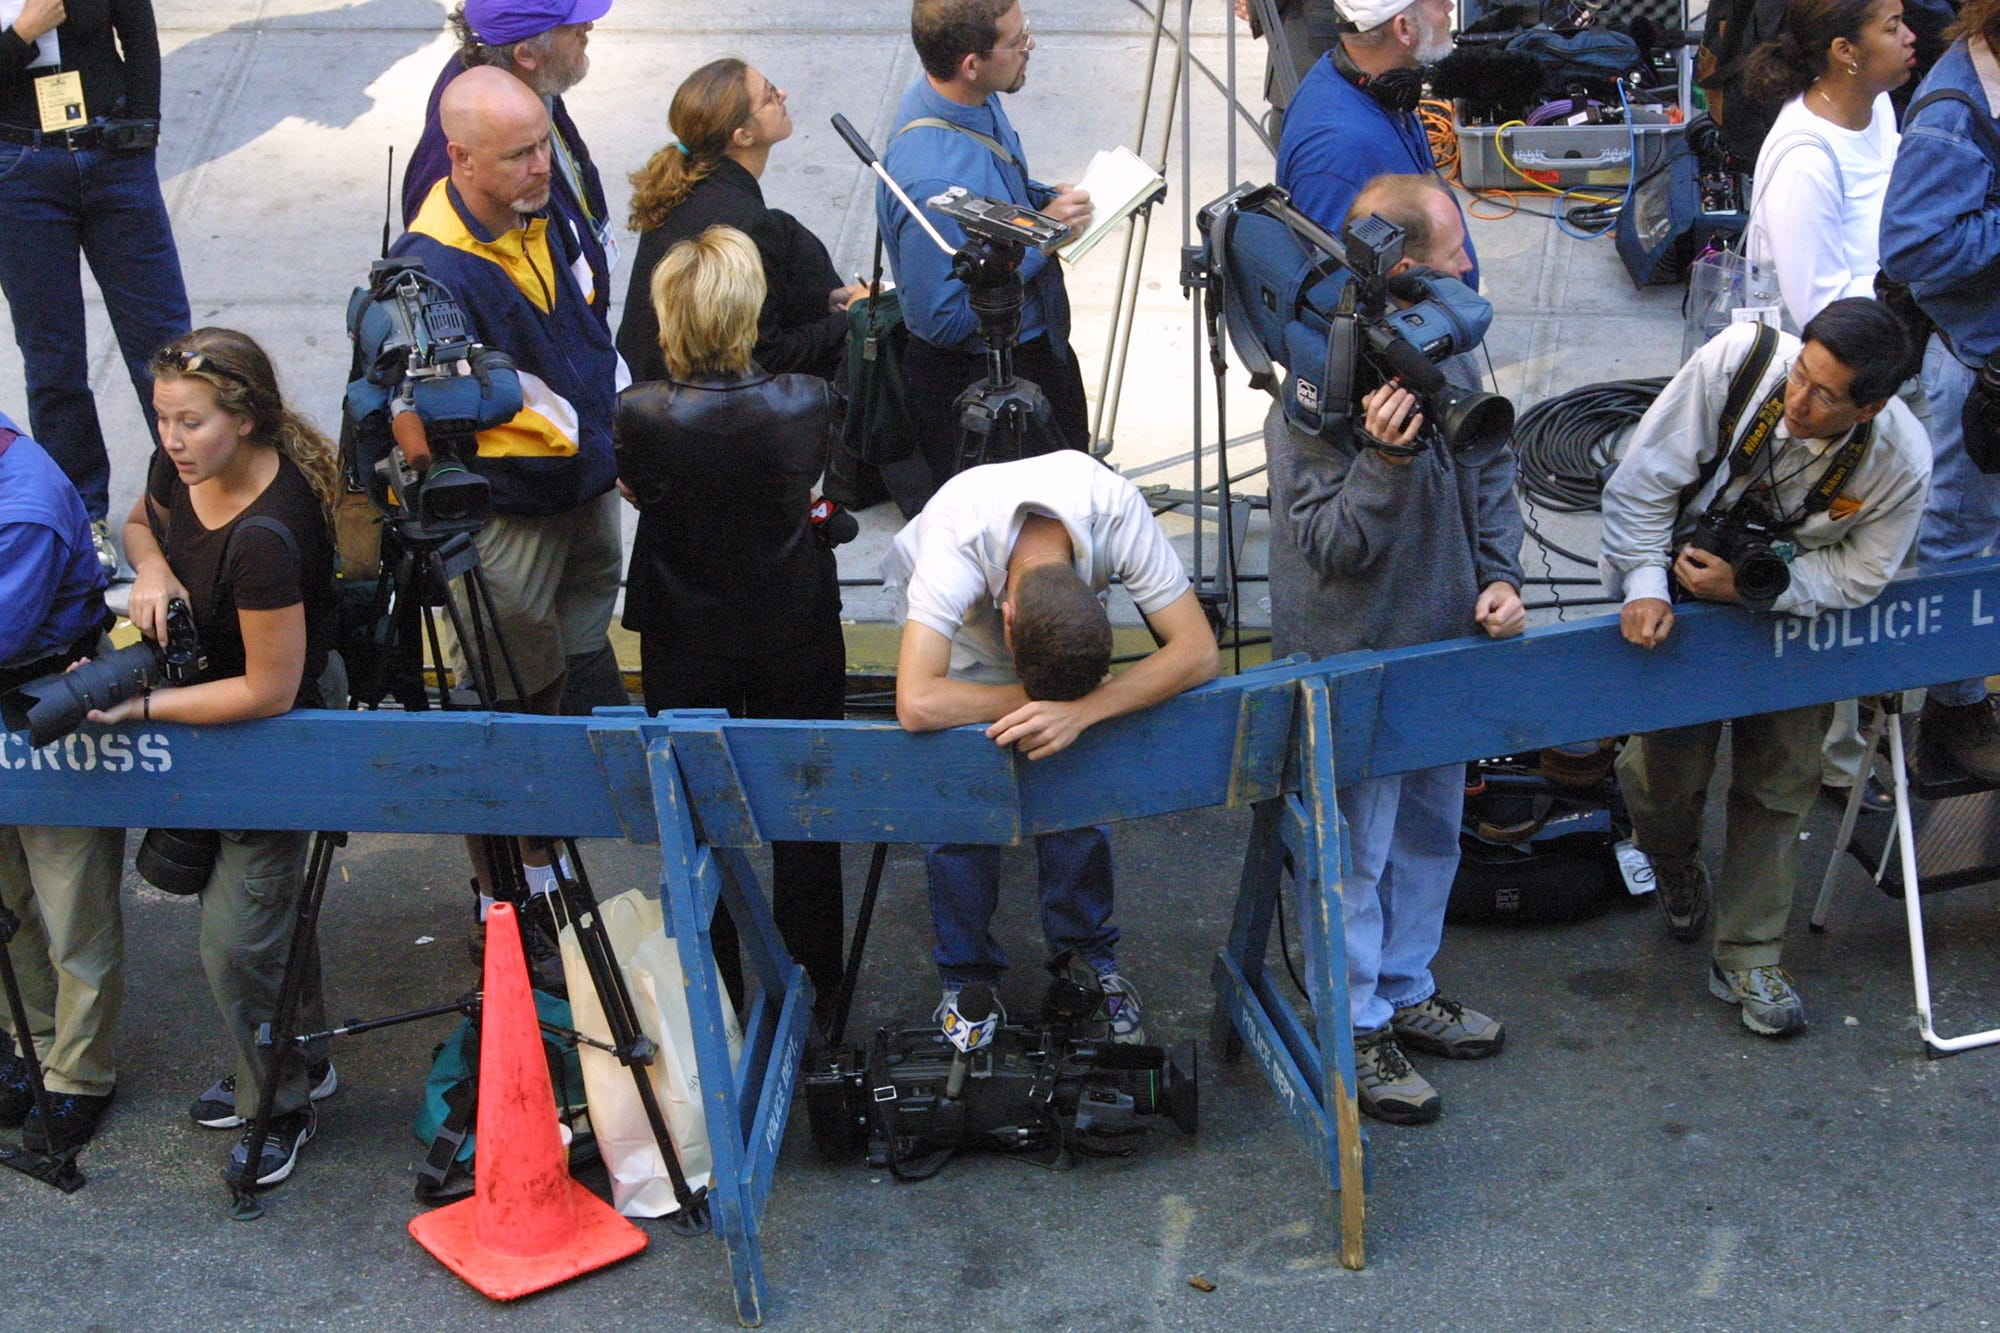 A camera man rests his head after being visibly moved during the funeral mass for NYFD Chaplain Mychal Judge at  St, Francis Cathedral on West 31st Street near 6th Ave in New York City. Saturday, September 15, 2001.